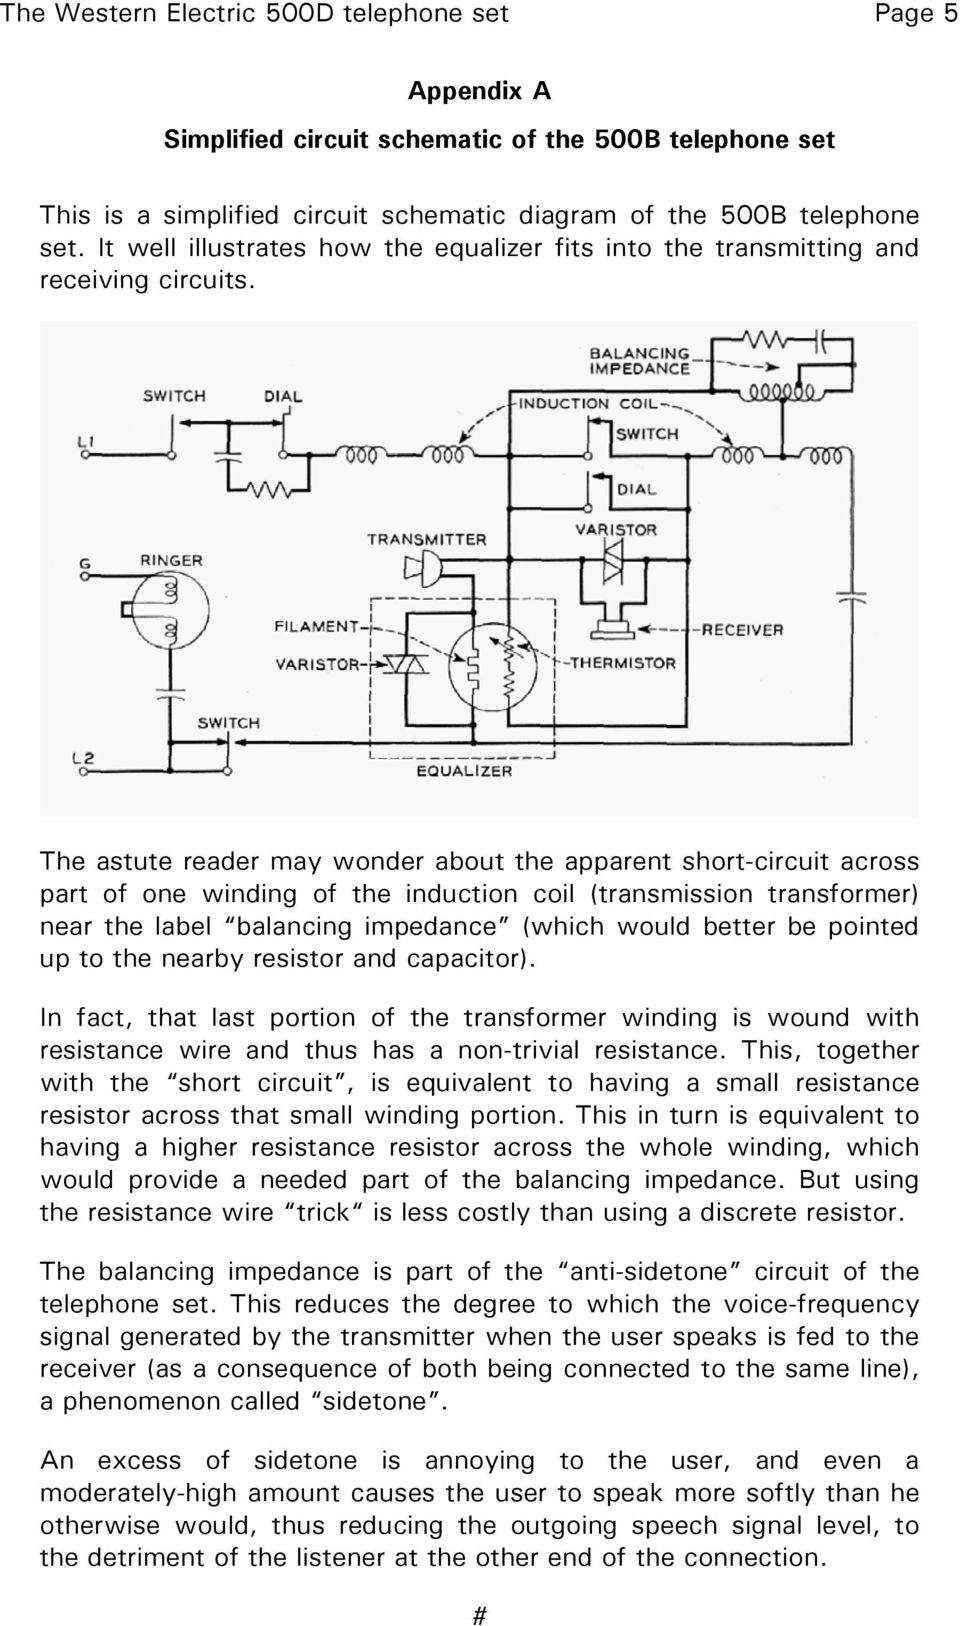 The astute reader may wonder about the apparent short-circuit across part of one winding of the induction coil (transmission transformer) near the label balancing impedance (which would better be